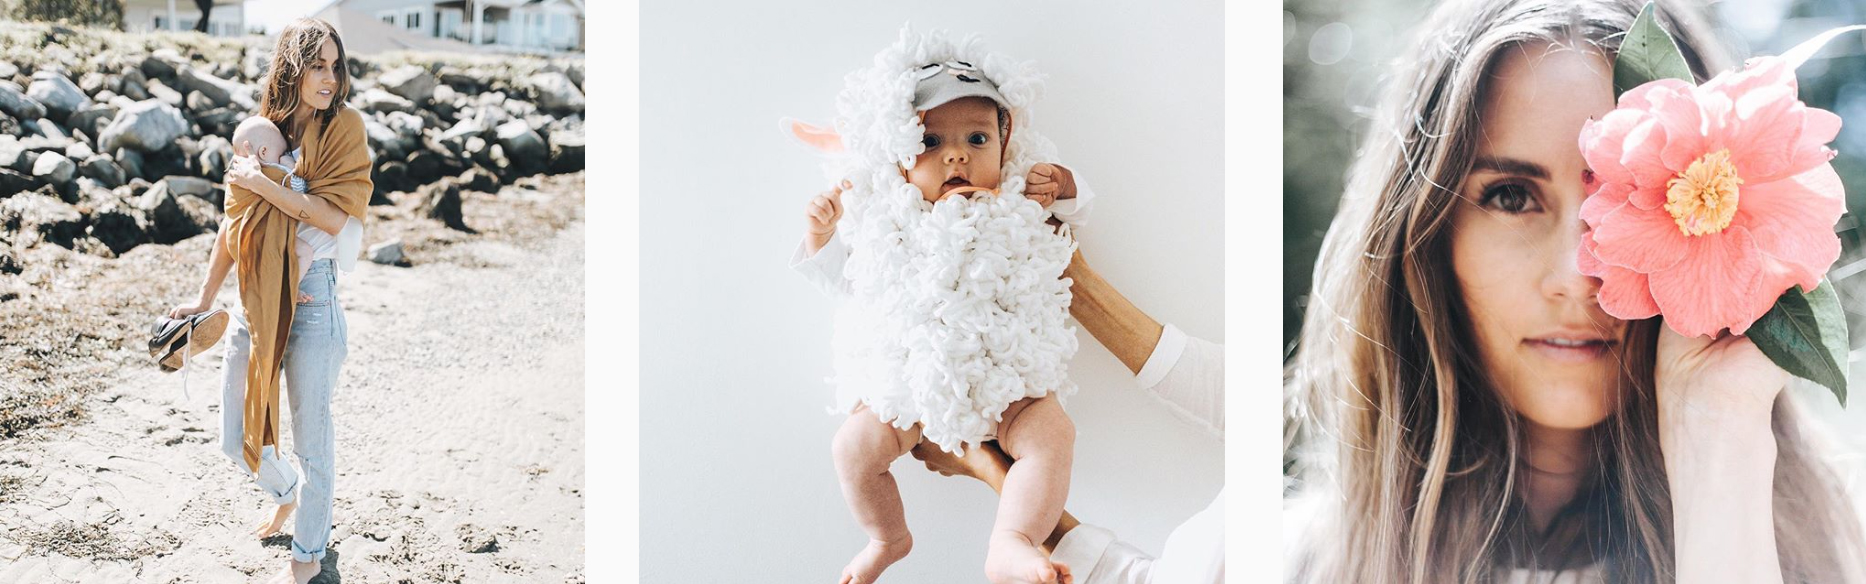 5 Cool Moms to Follow on Instagram - Planoly Blog - Mother's Day - Bethany Menzel